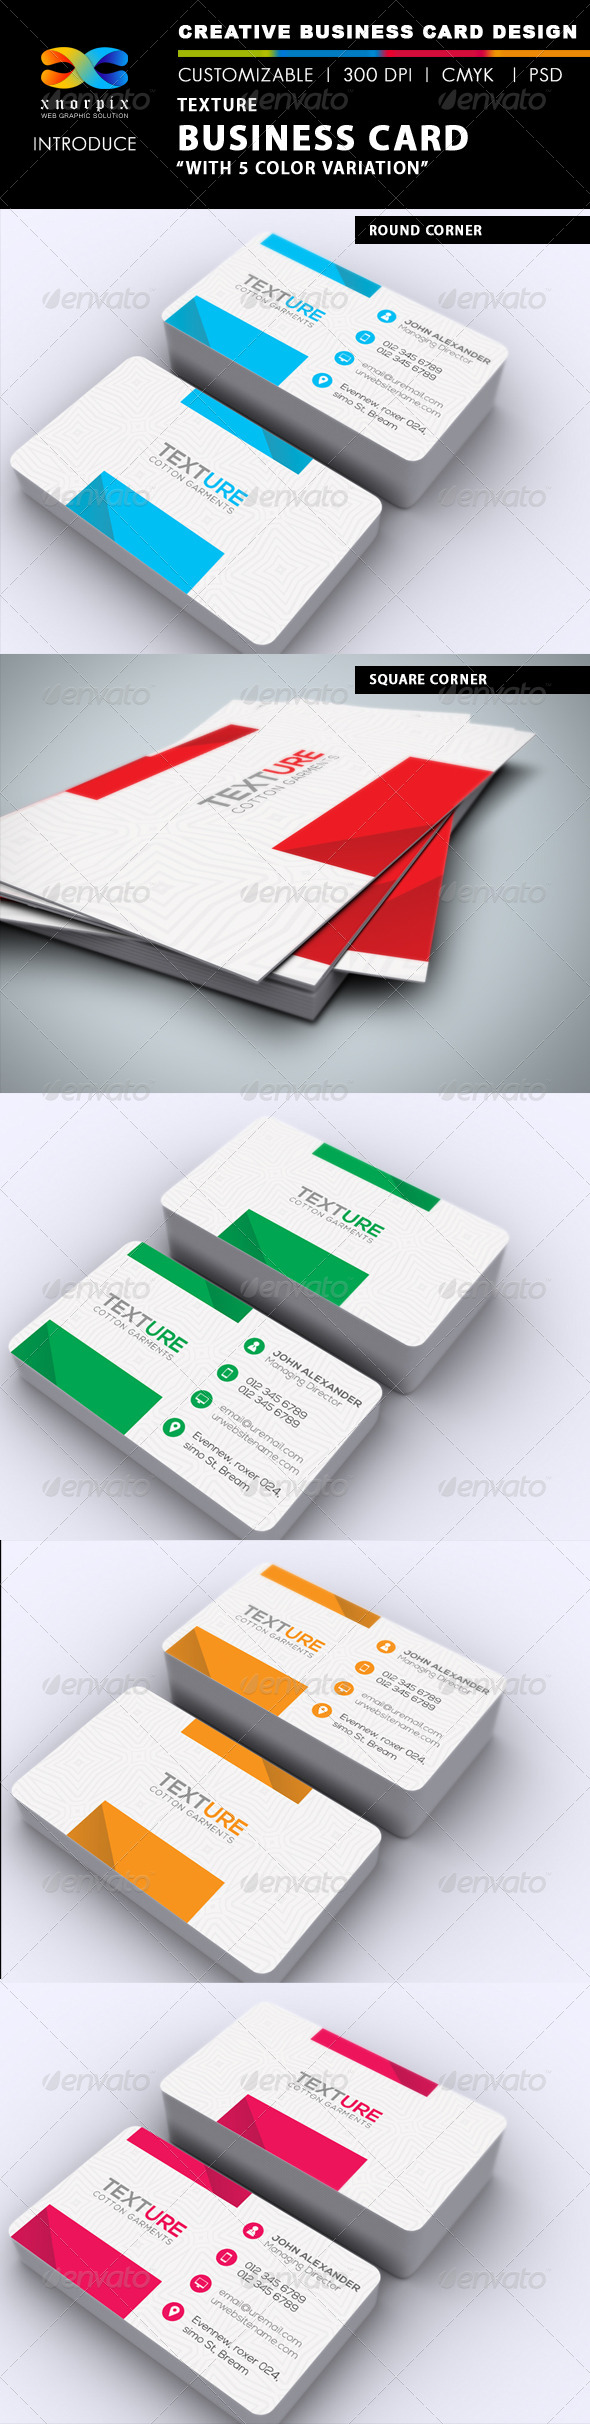 GraphicRiver Texture Business Card 6568767